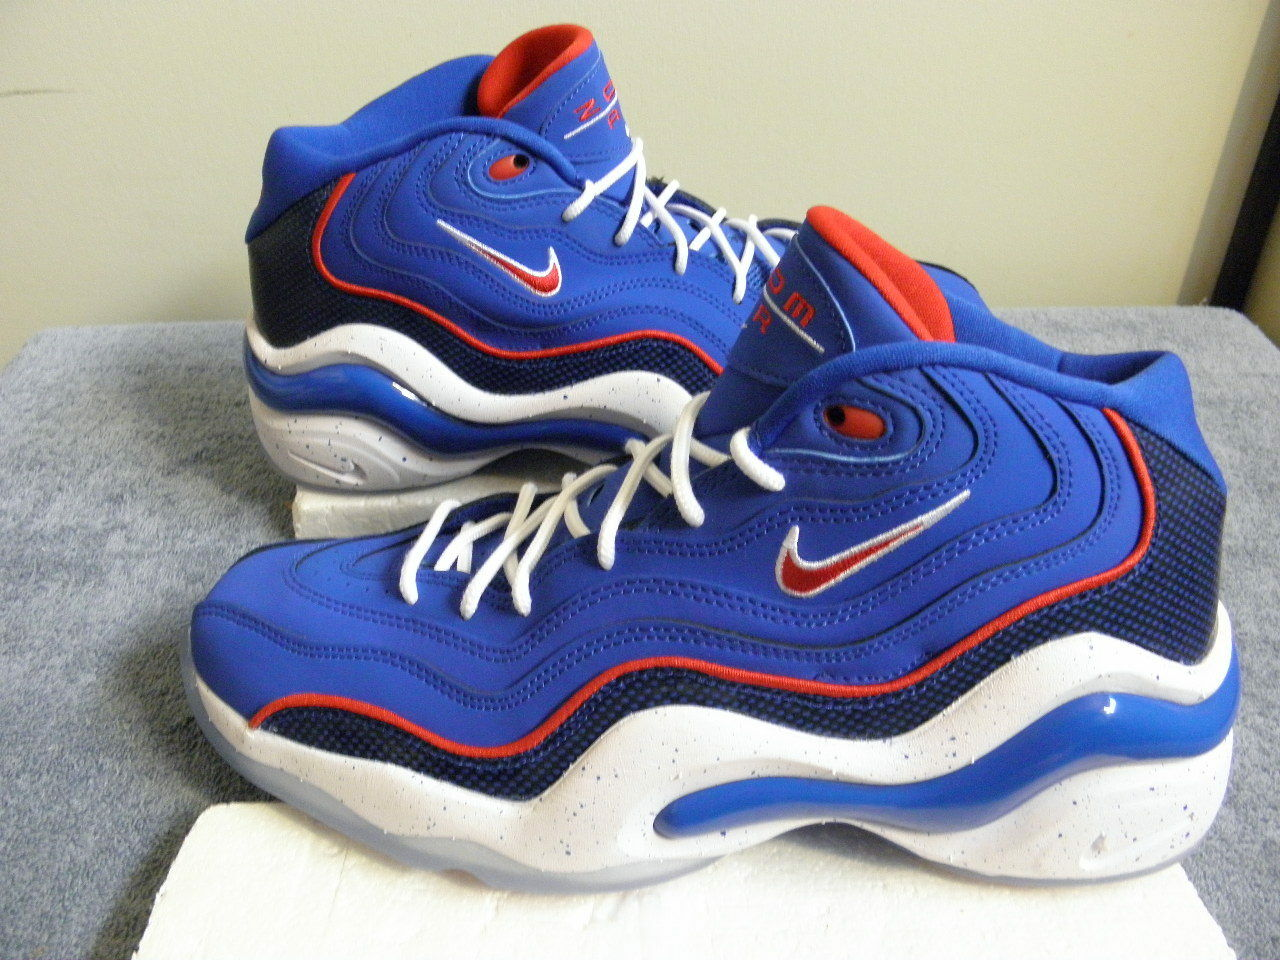 nike air zoom - penny 96 allen iverson ai penny - hardaway unveröffentlichte ds neue 10,5 eacb05